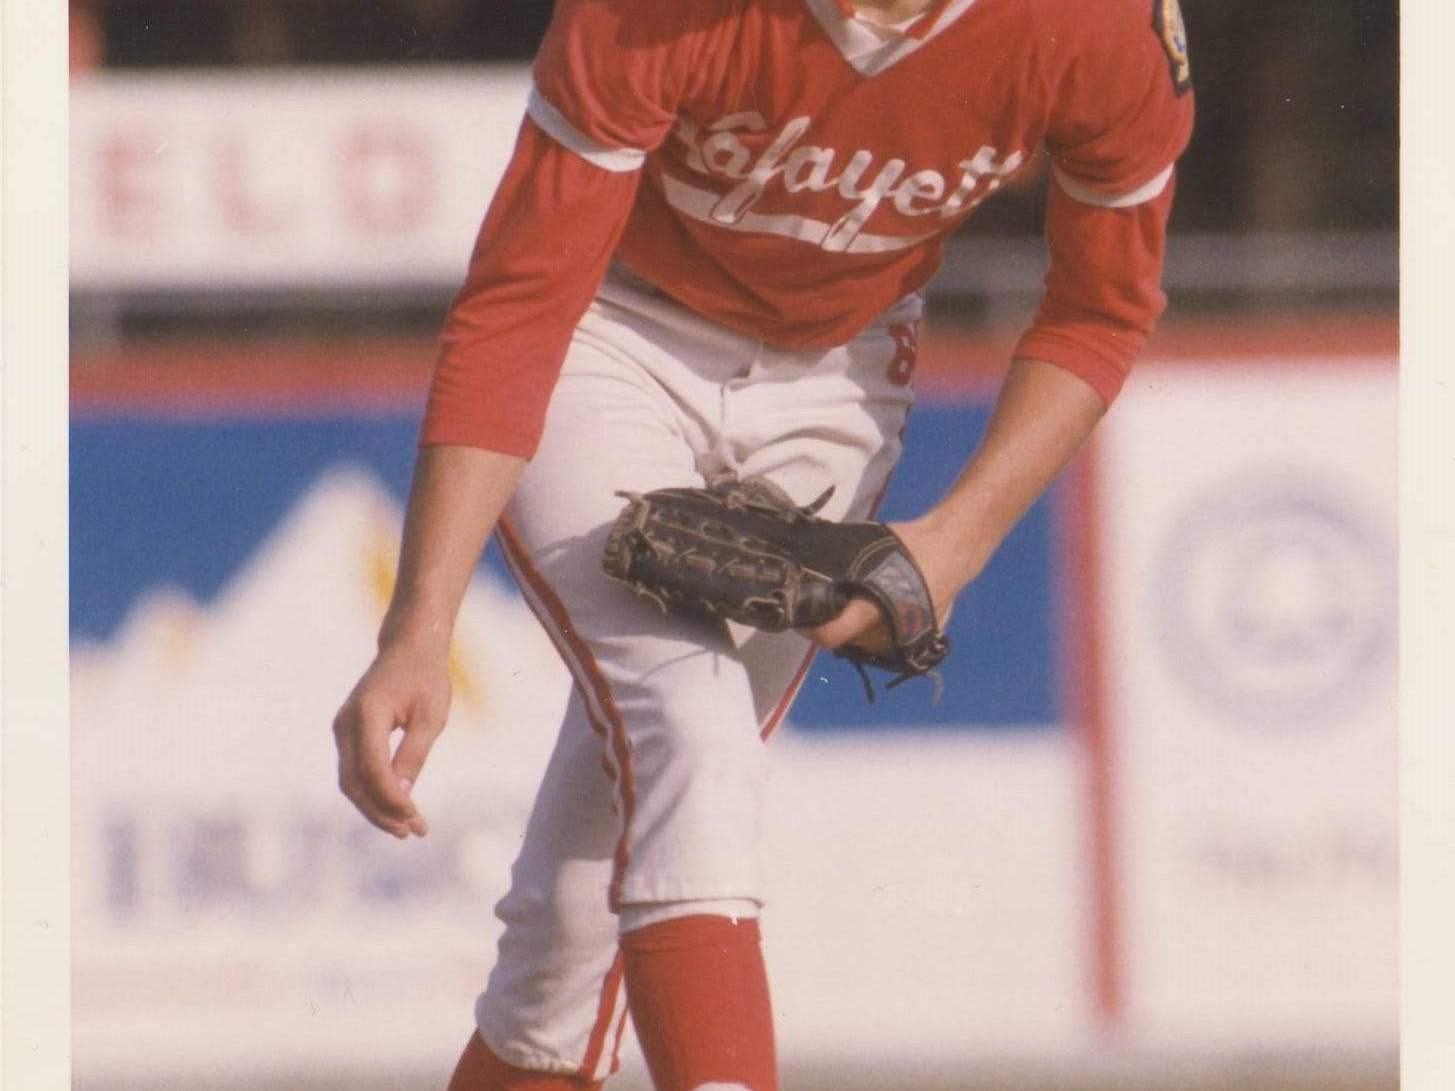 Tim Leger was a pitcher and outfielder for the Acadiana-based Delhomme Drillers in the early 1990s. Leger was later picked in the fourth round by the Pittsburgh Pirates. He played American Legion ball, but his son Gunner grew up in the travel-ball era.